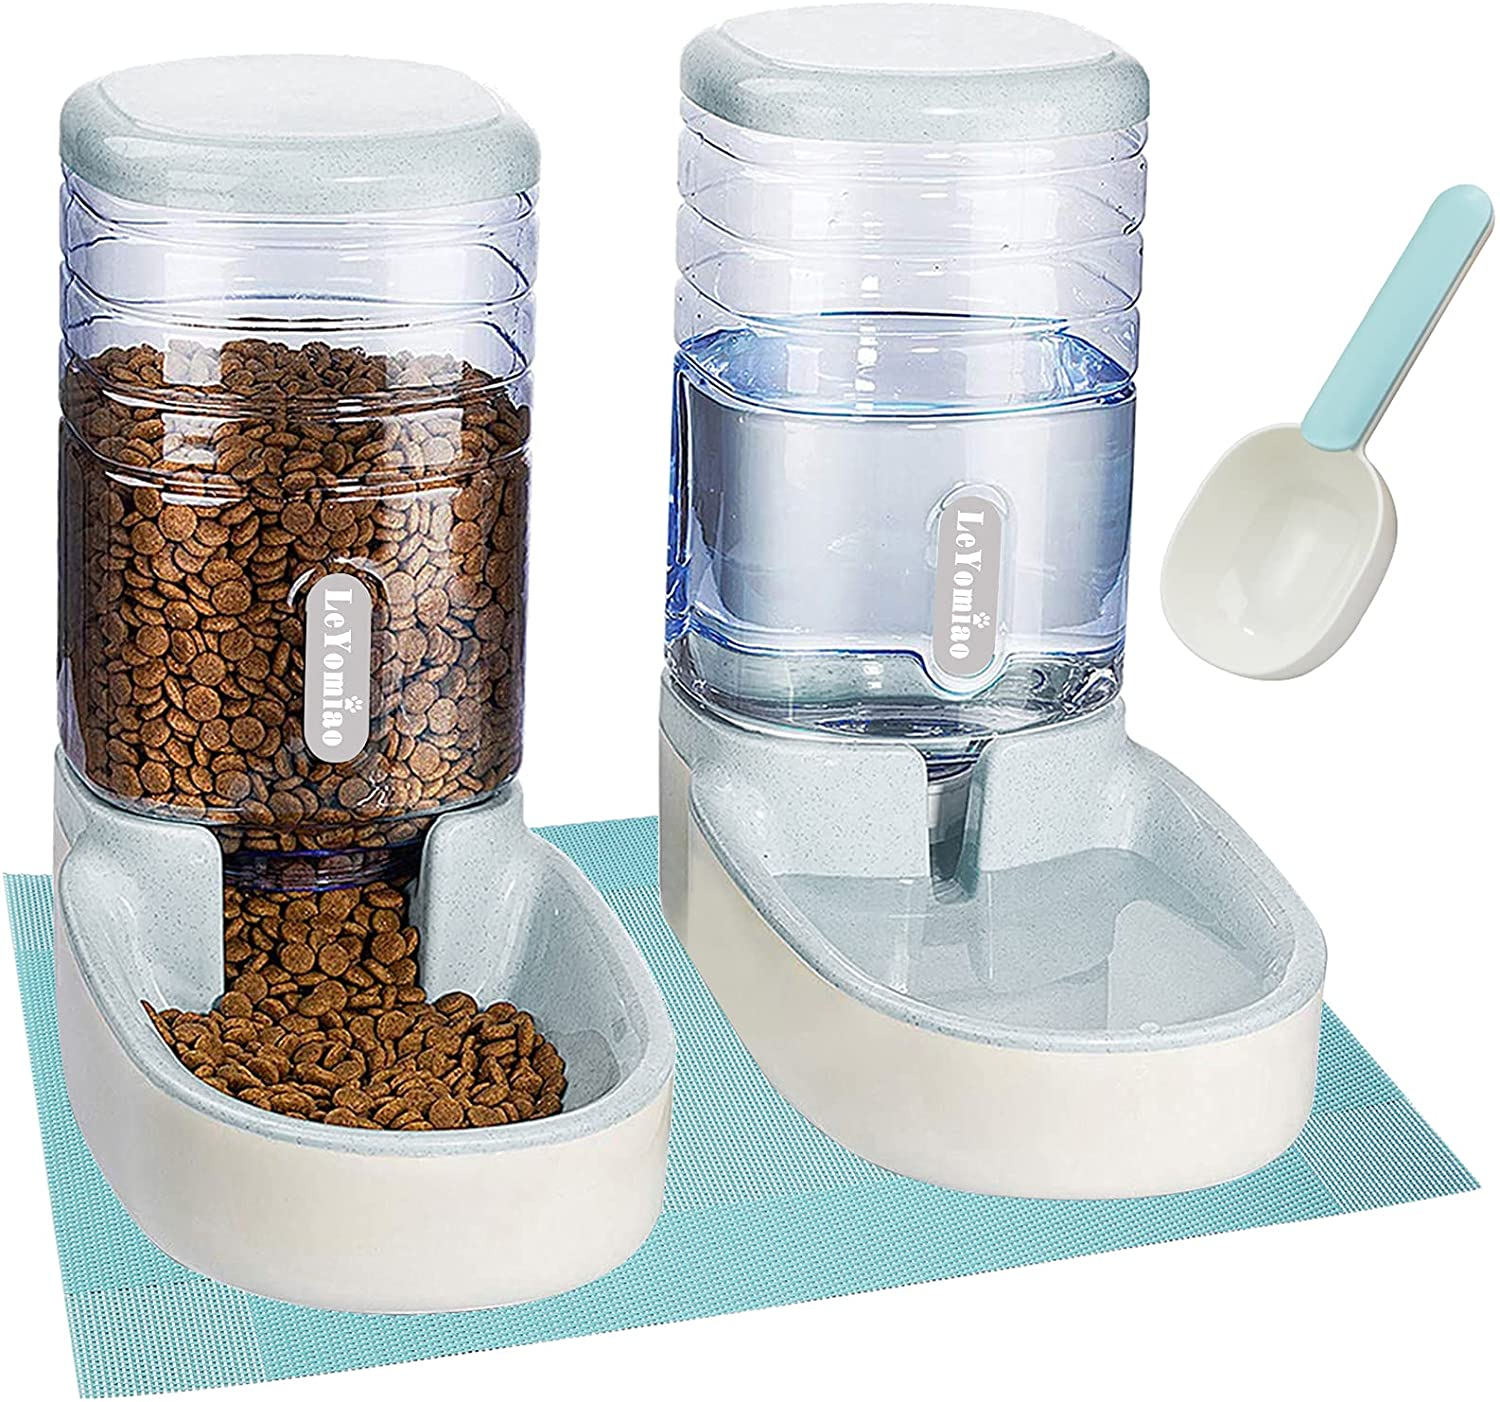 LeYoMiao Pets Feeder Cats Dogs Automatic Feeder Set 3.8 L with 1 Water Dispenser and 1 Food Feeder for Small, Medium & Big Pets